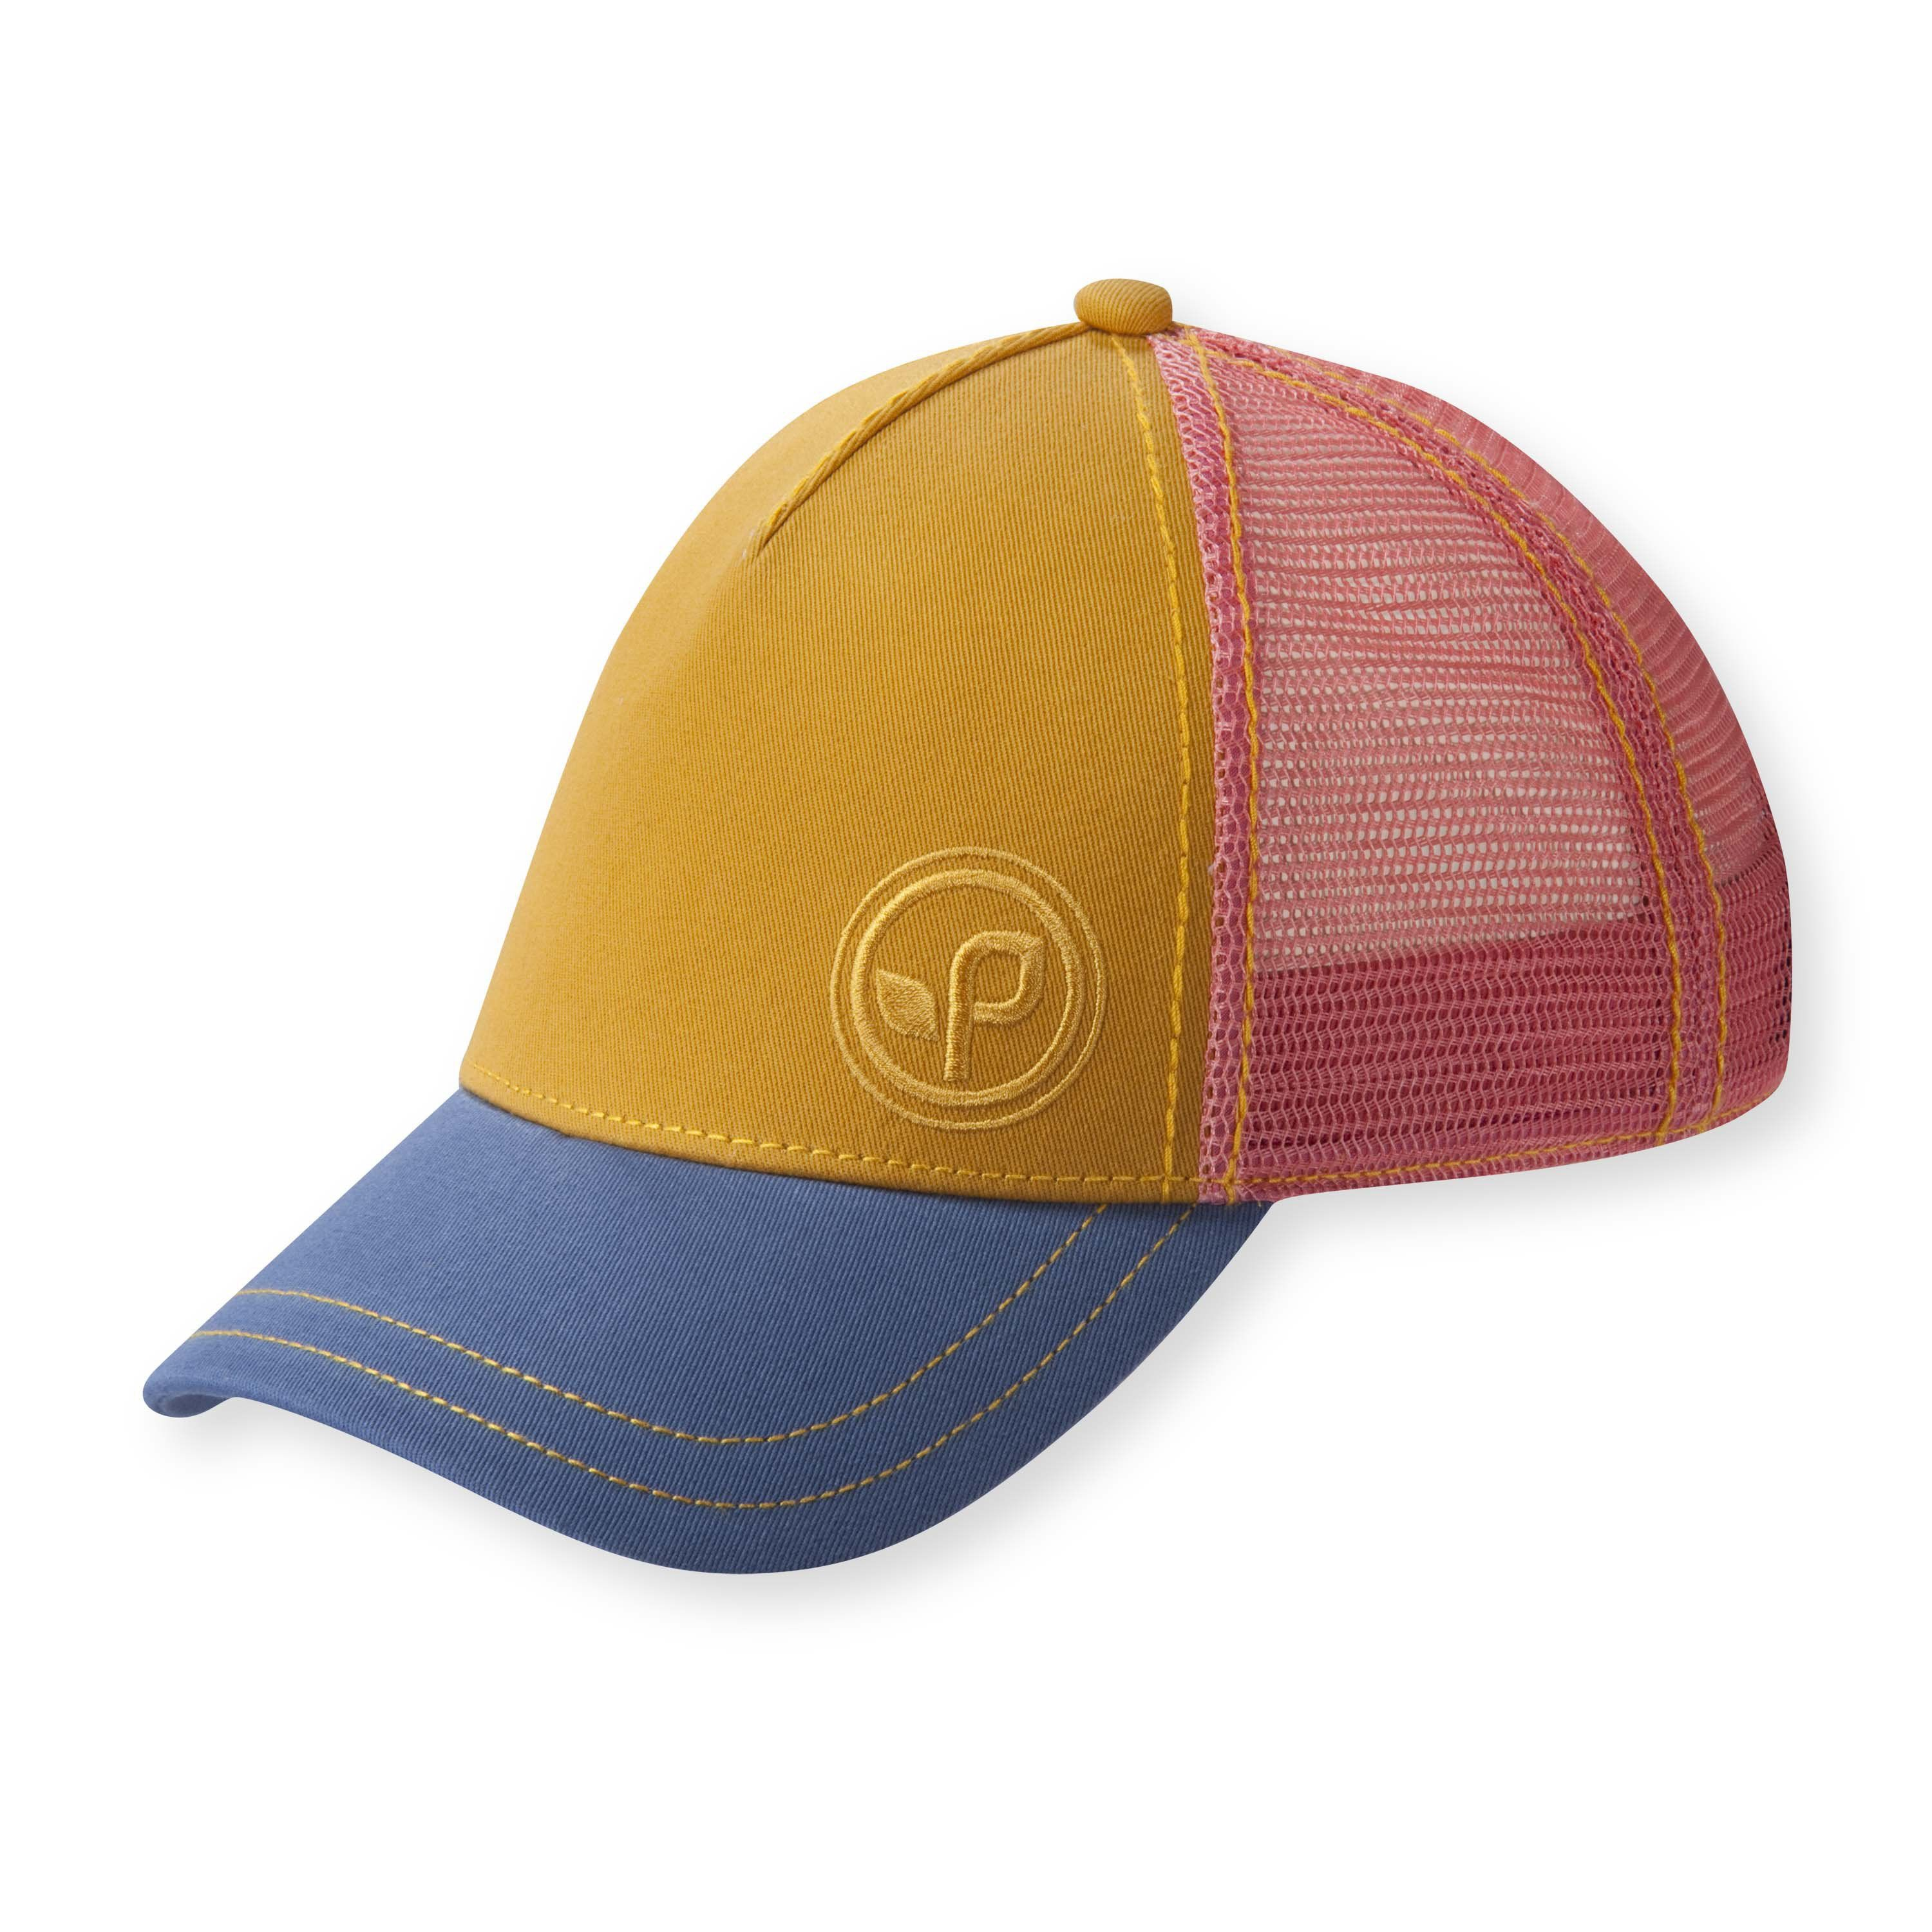 6a0363c1c0056 Best Selling Women s Specific Trucker Hat - Adjustable at Back - New Colors  for 2018